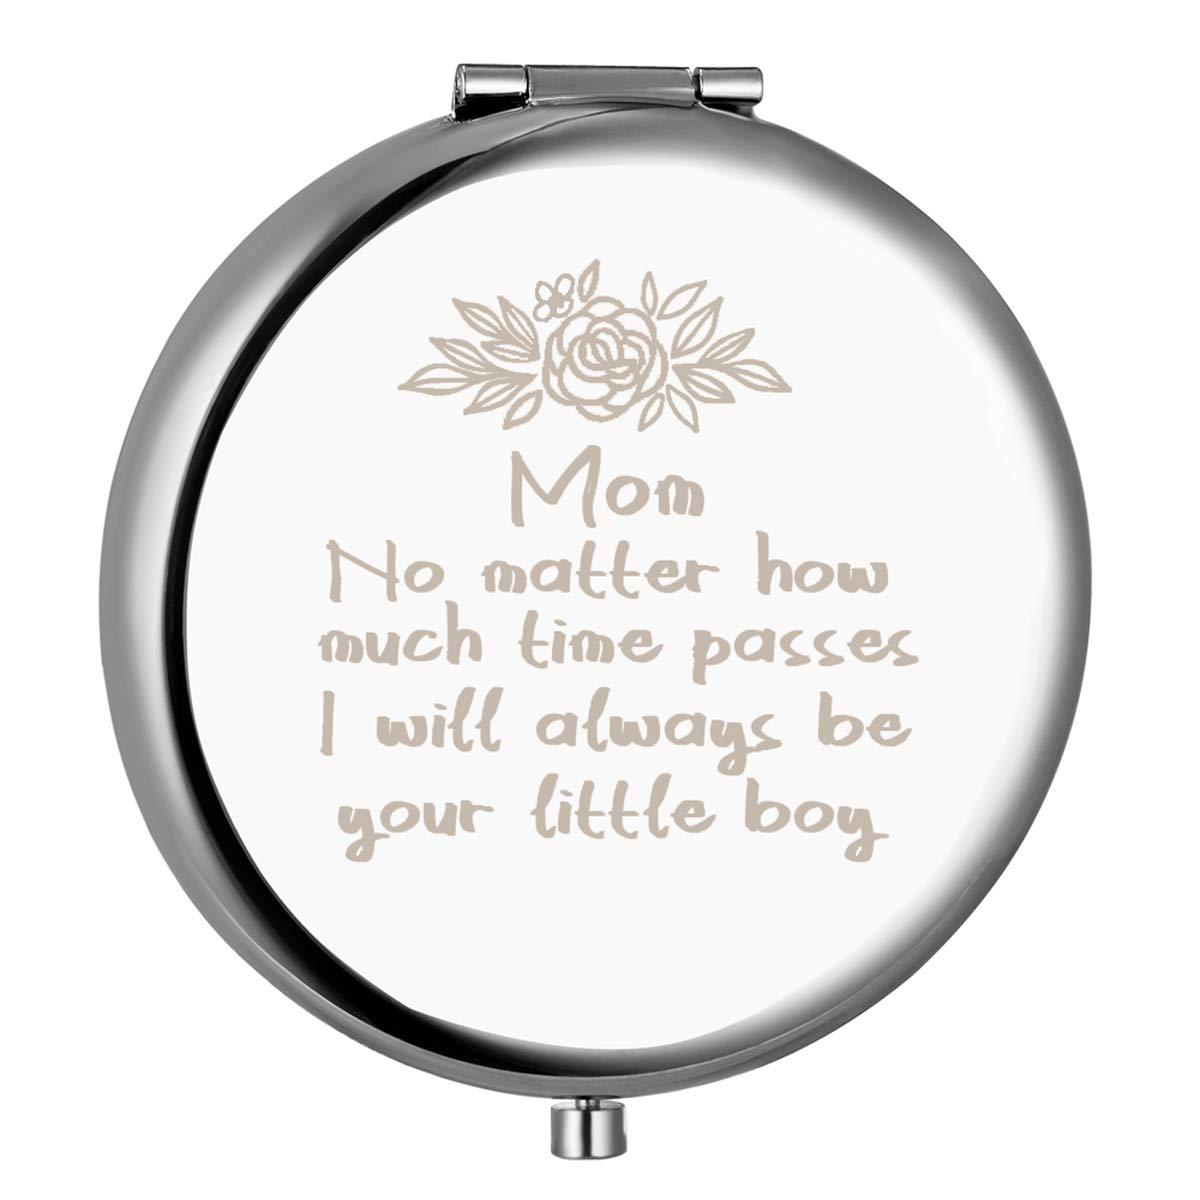 sedmart Gift for Mom from Son,Mother's Day Birthday Christmas Anniversary Valentine's Gifts for Mom from Son, Unique Engraved Compact Mirror,Personalized Memorable Present for Mom